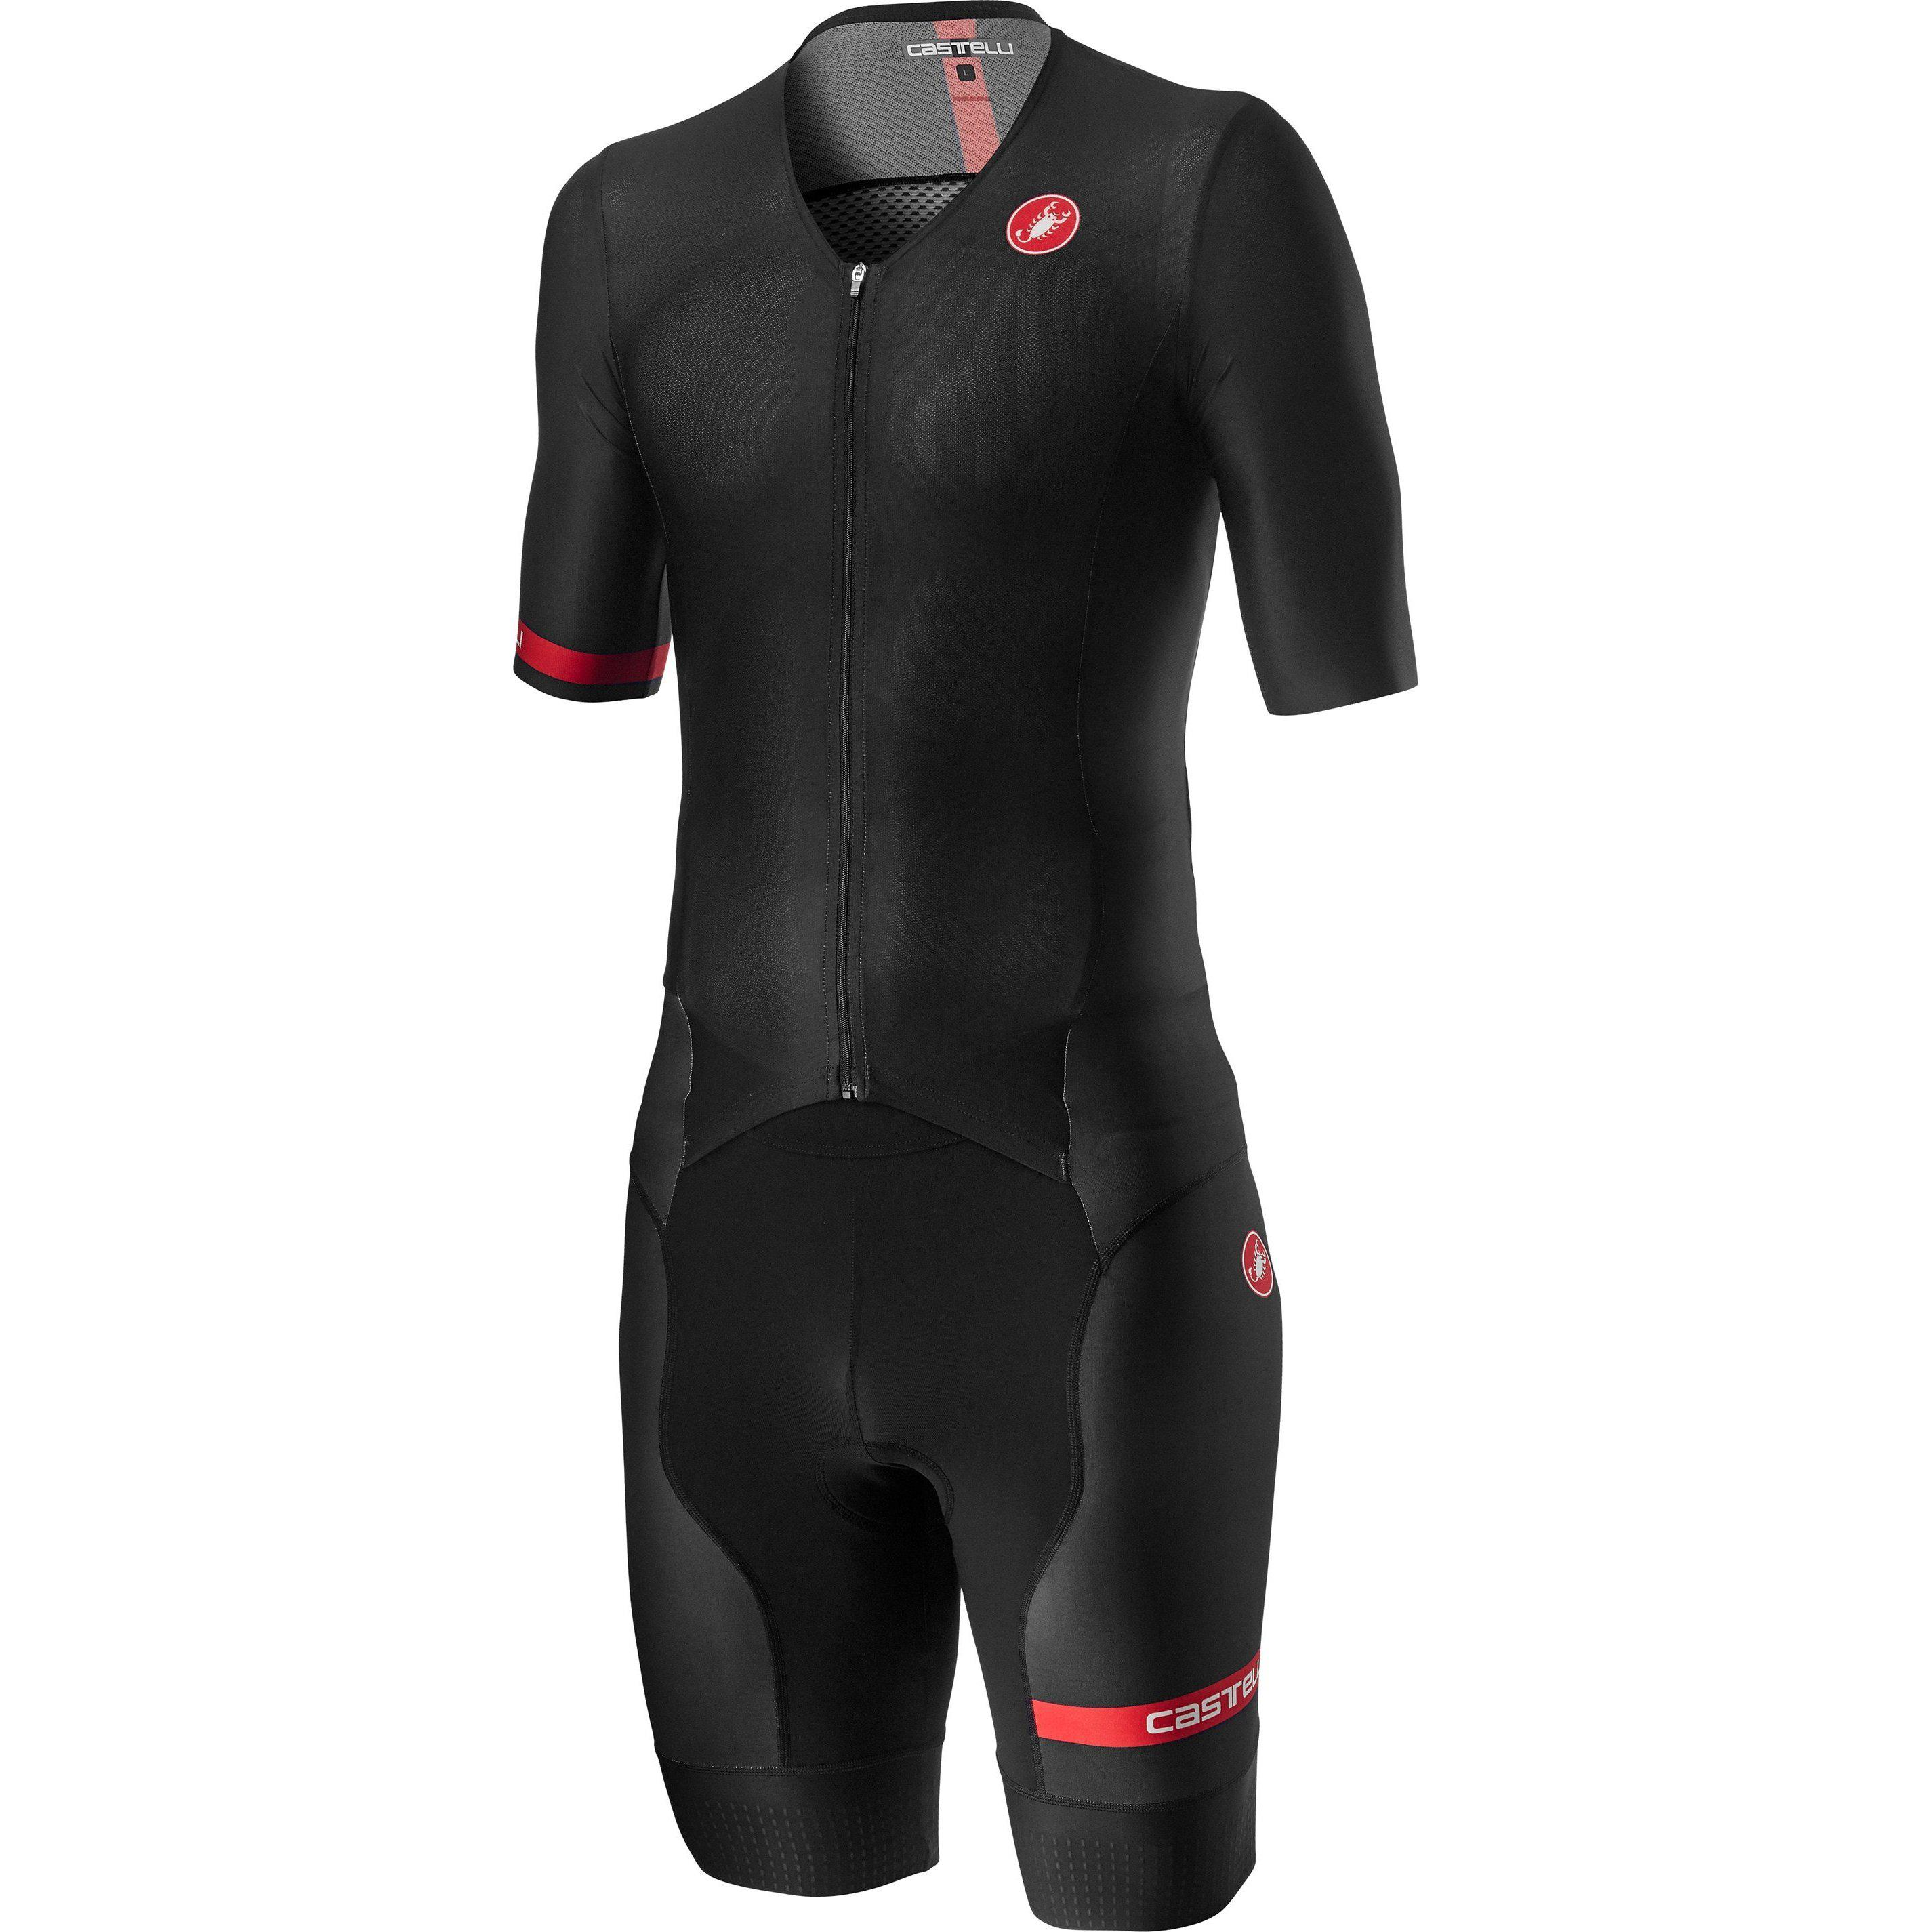 Castelli-Castelli Free Sanremo 2 Suit Short Sleeve-Black-S-CS200920102-saddleback-elite-performance-cycling